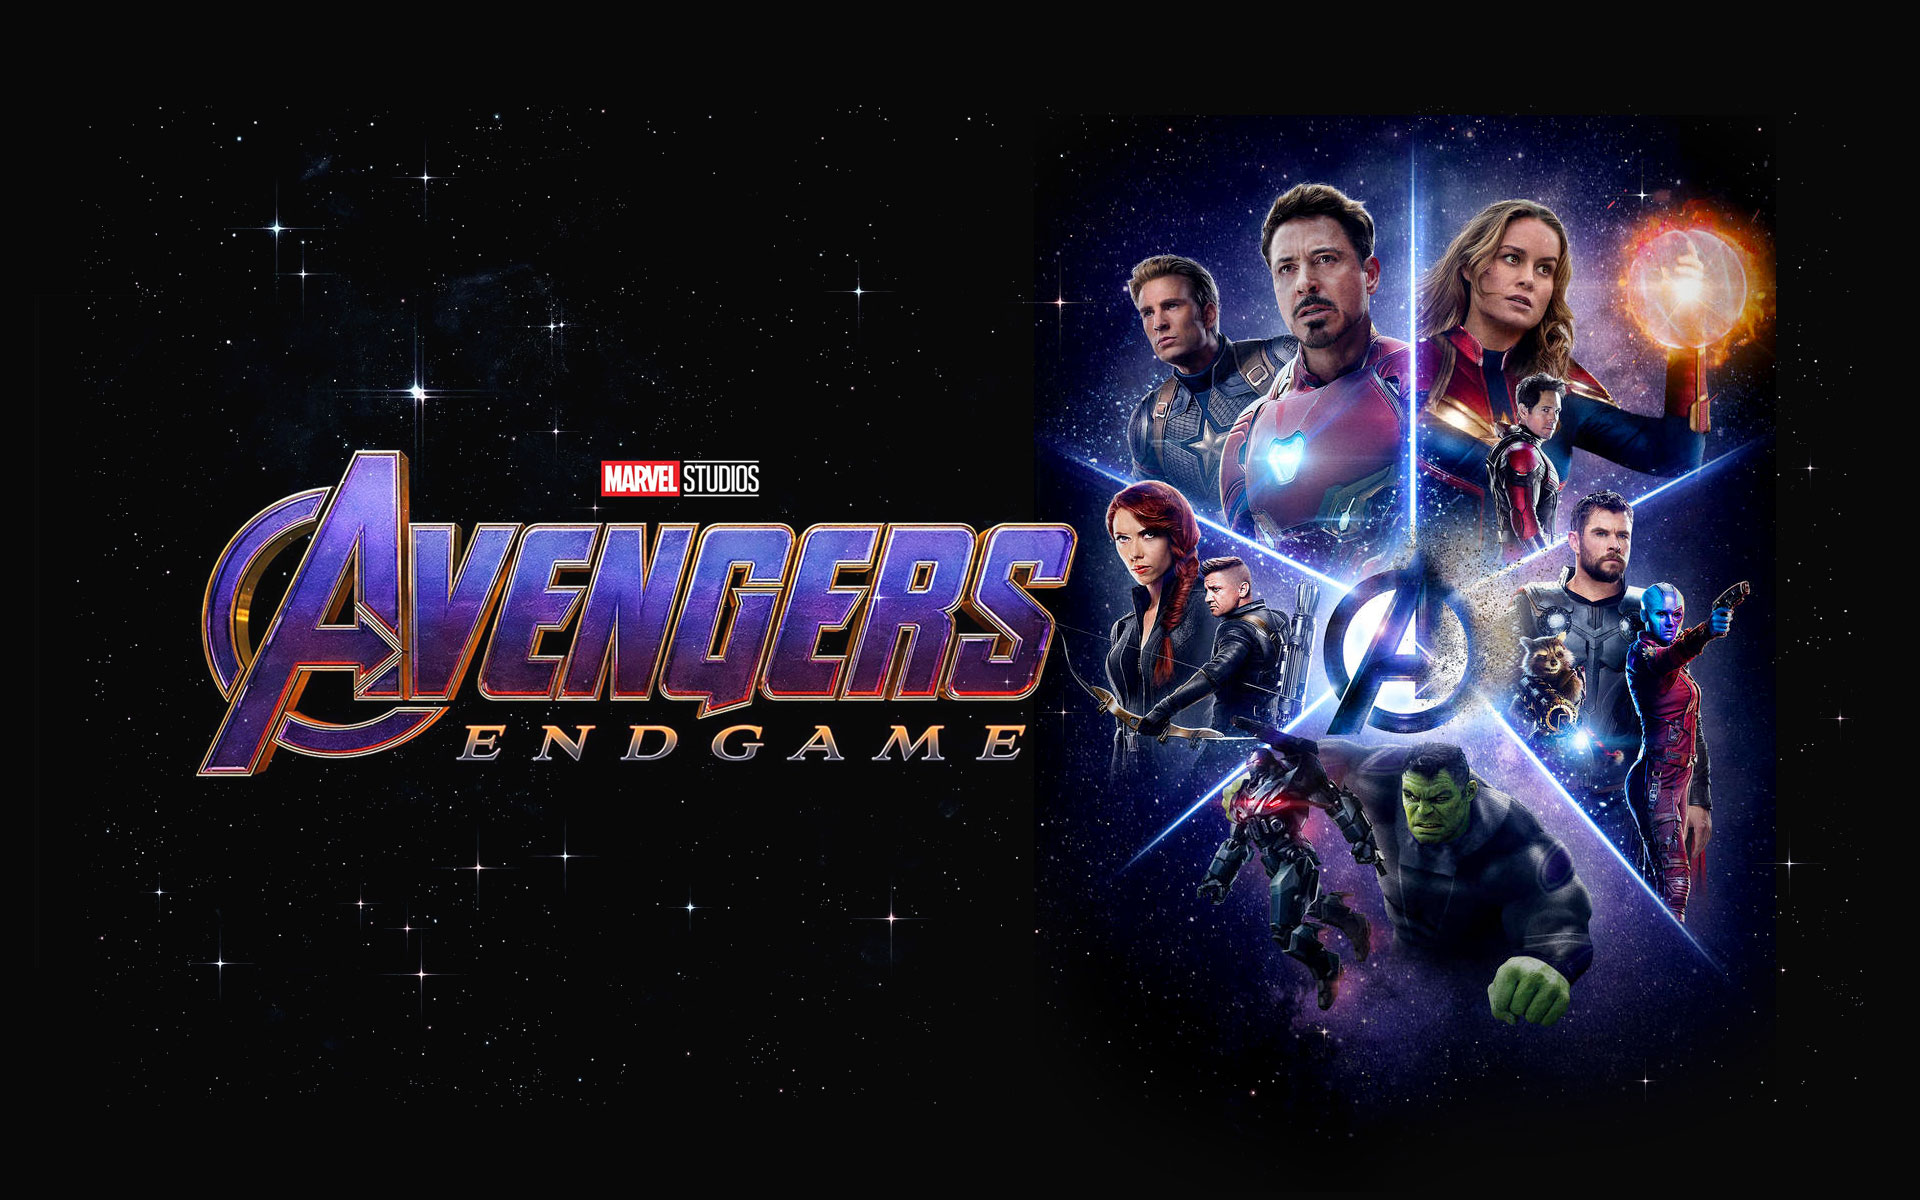 Avengers Endgame 2019 Oh That Film Blog